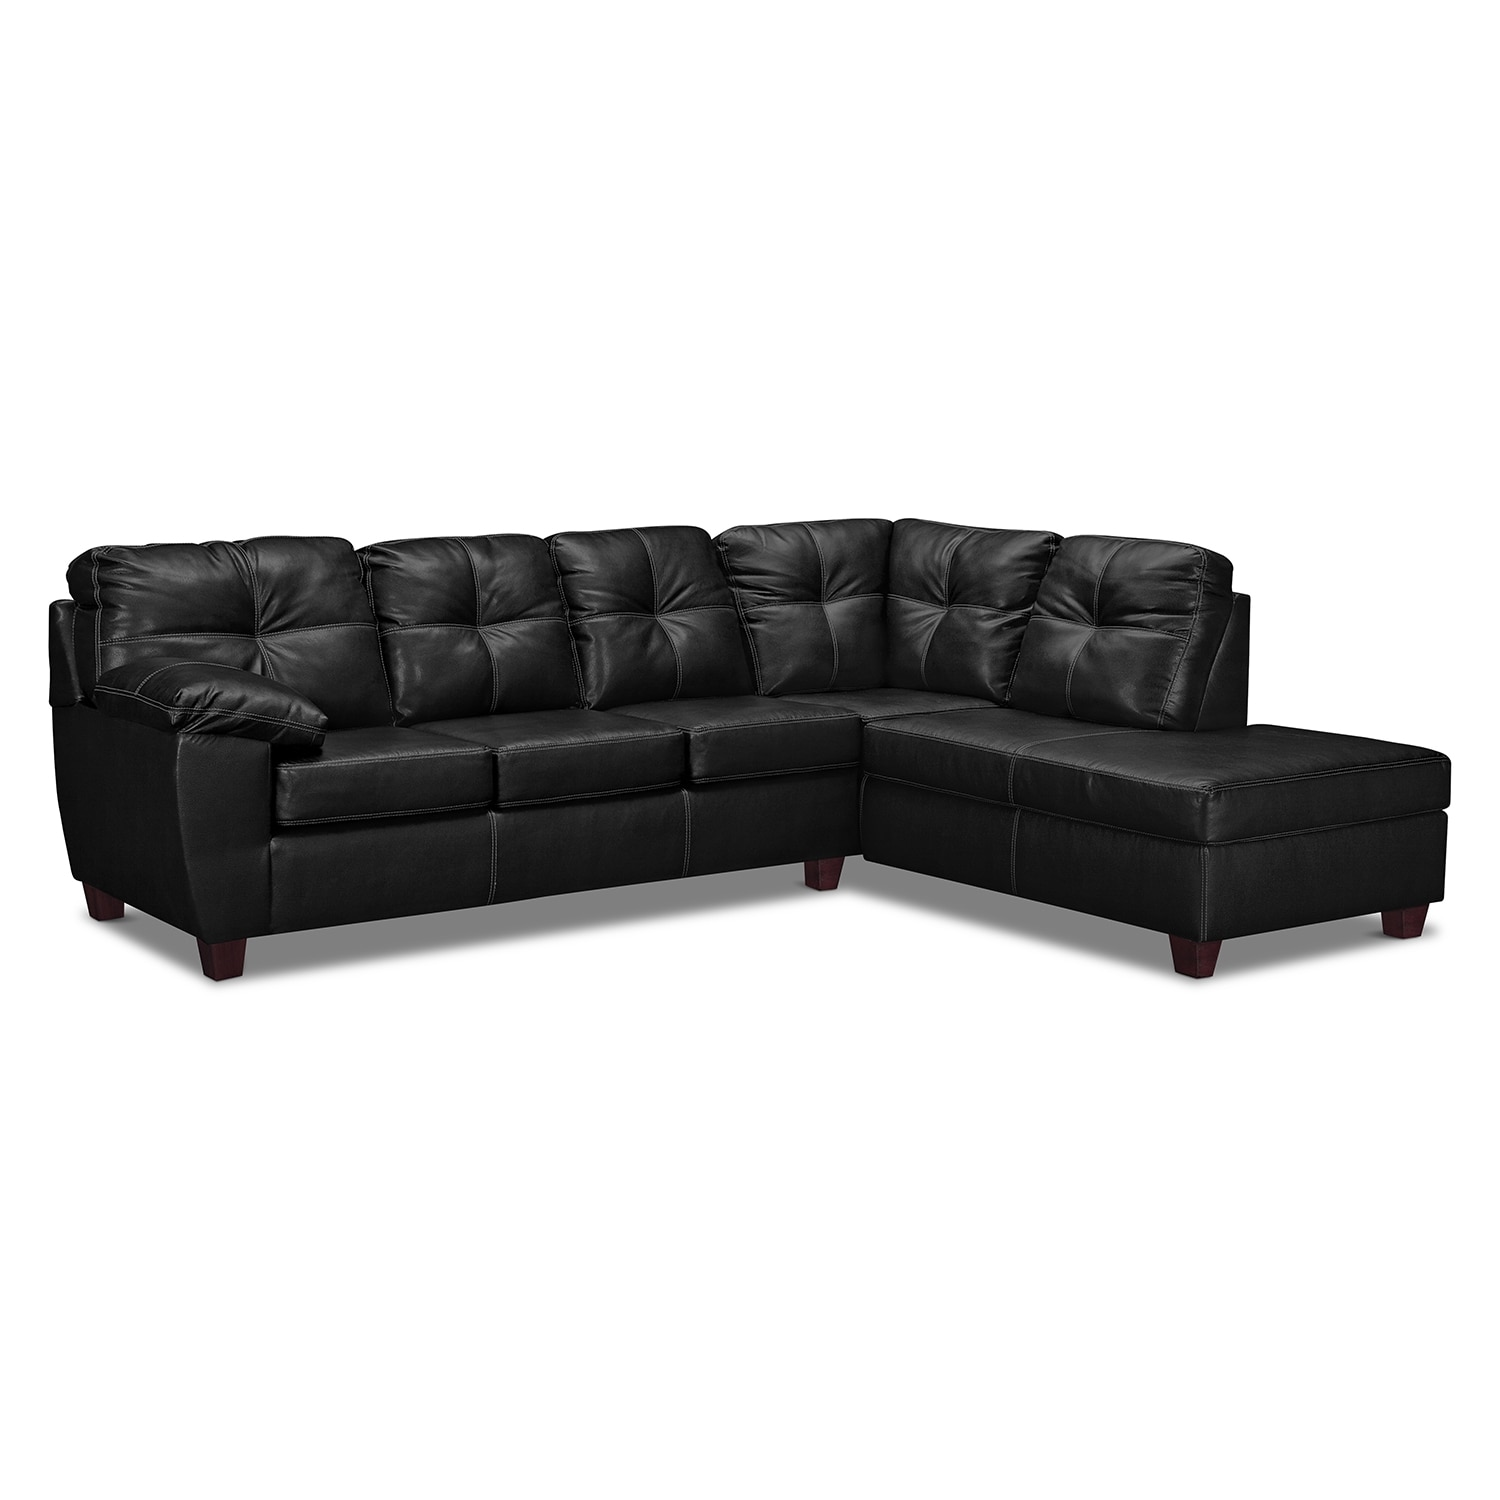 Rialto 2-Piece Innerspring Sleeper Sectional with Right-Facing Chaise - Onyx